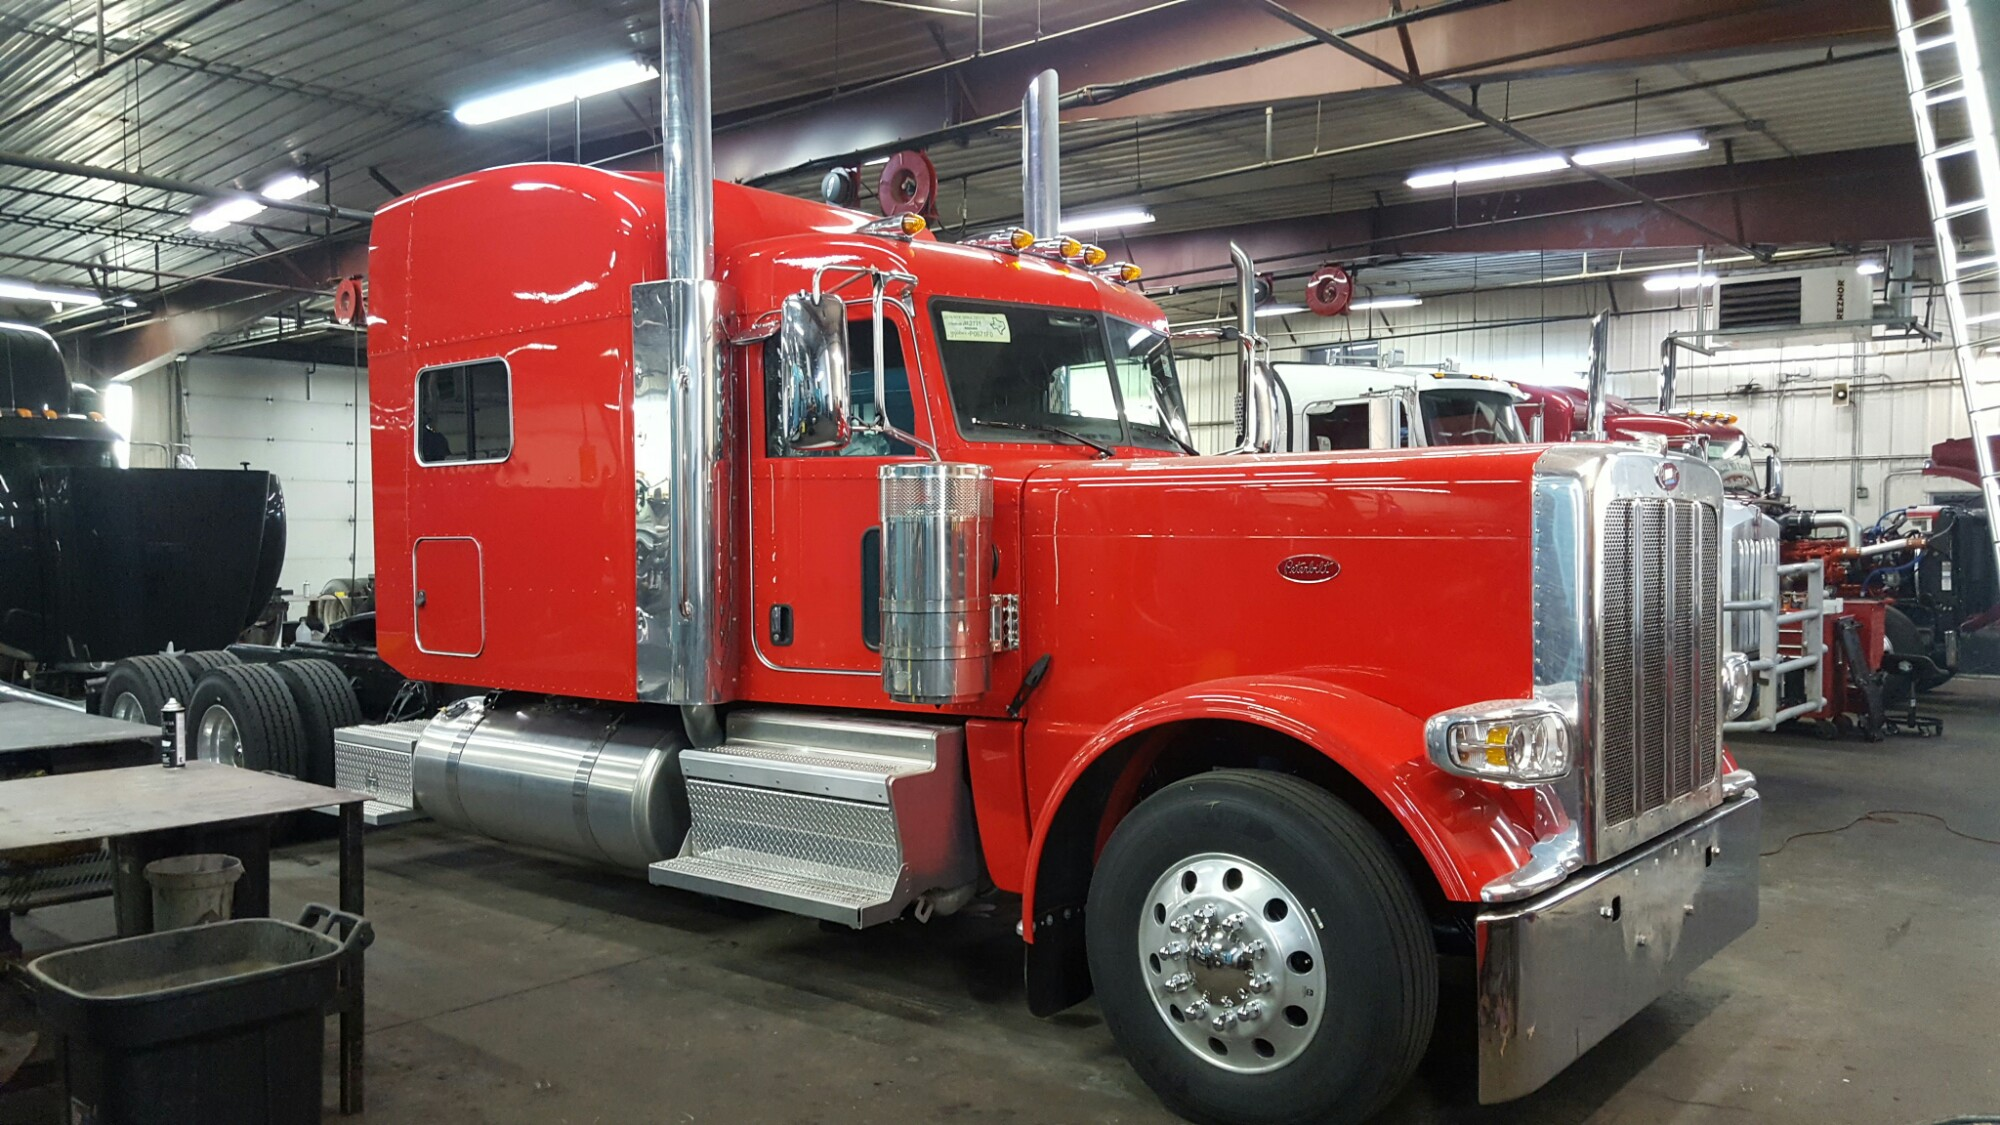 Wallpaper Stores In Sioux Falls Sd Viper Red 2018 389 Just In Peterbilt Of Sioux Falls